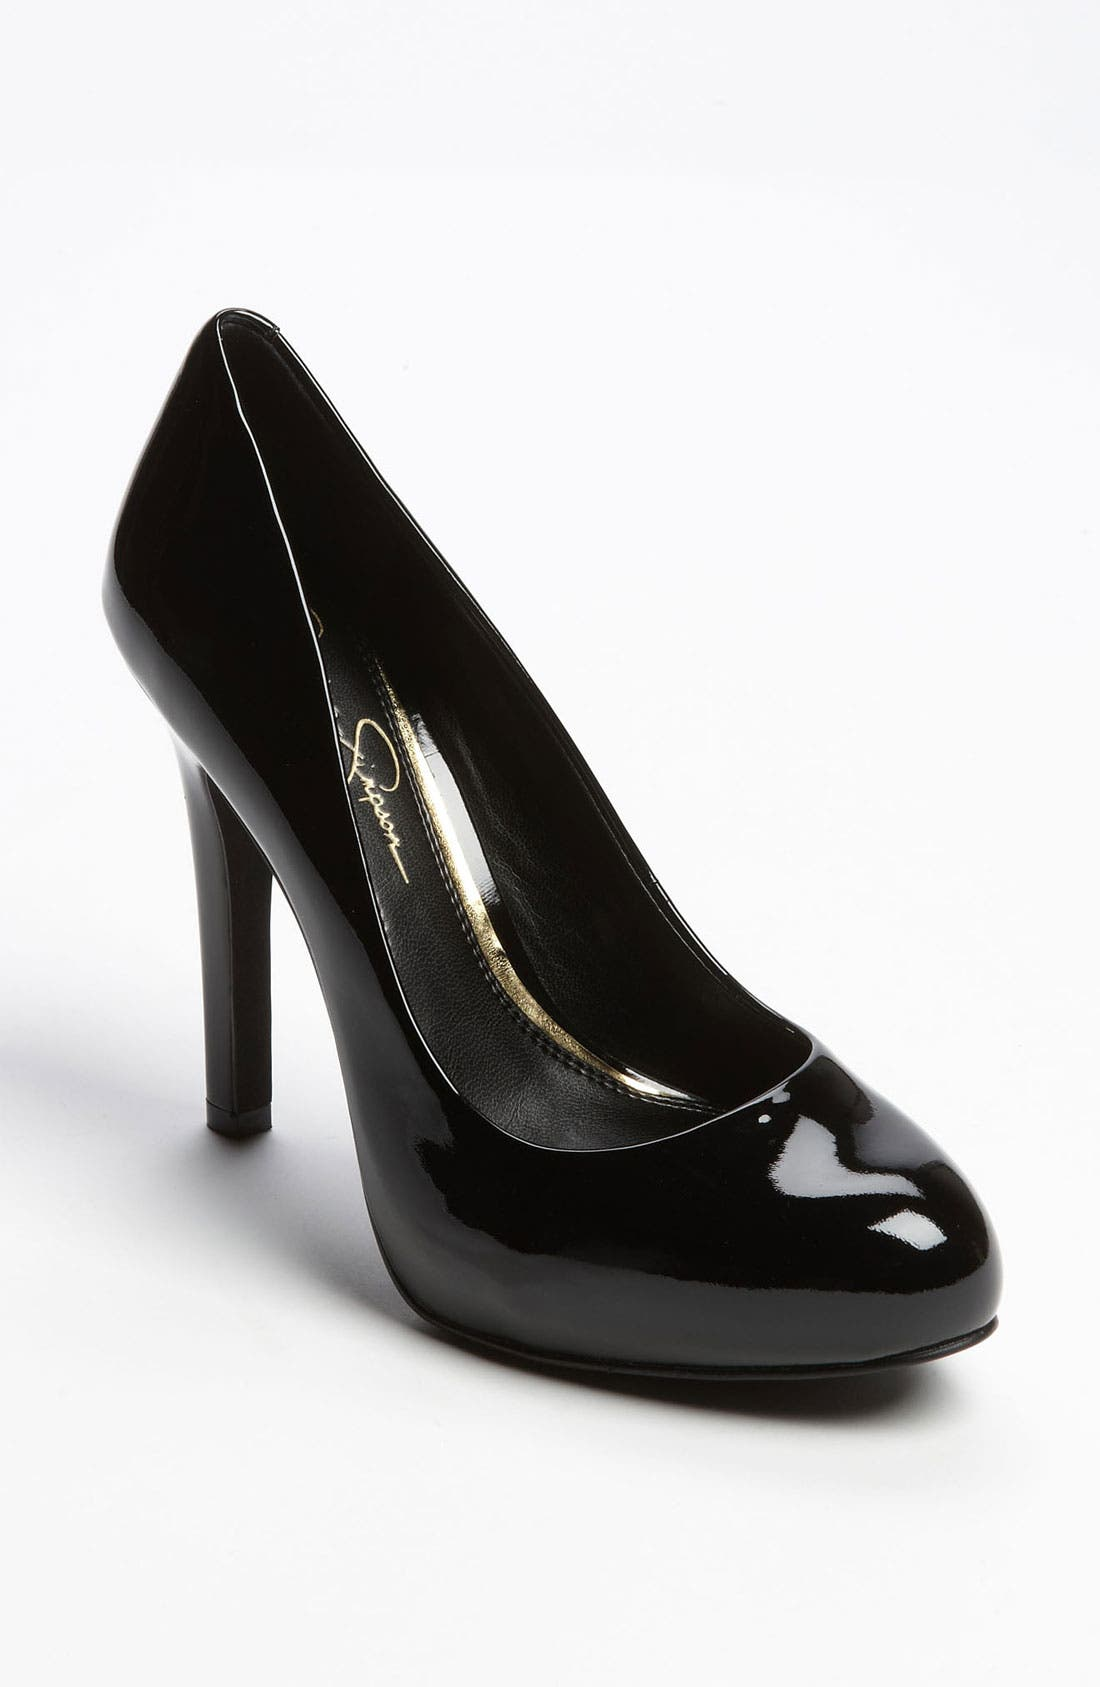 JESSICA SIMPSON, 'Abriana' Pump, Main thumbnail 1, color, 001